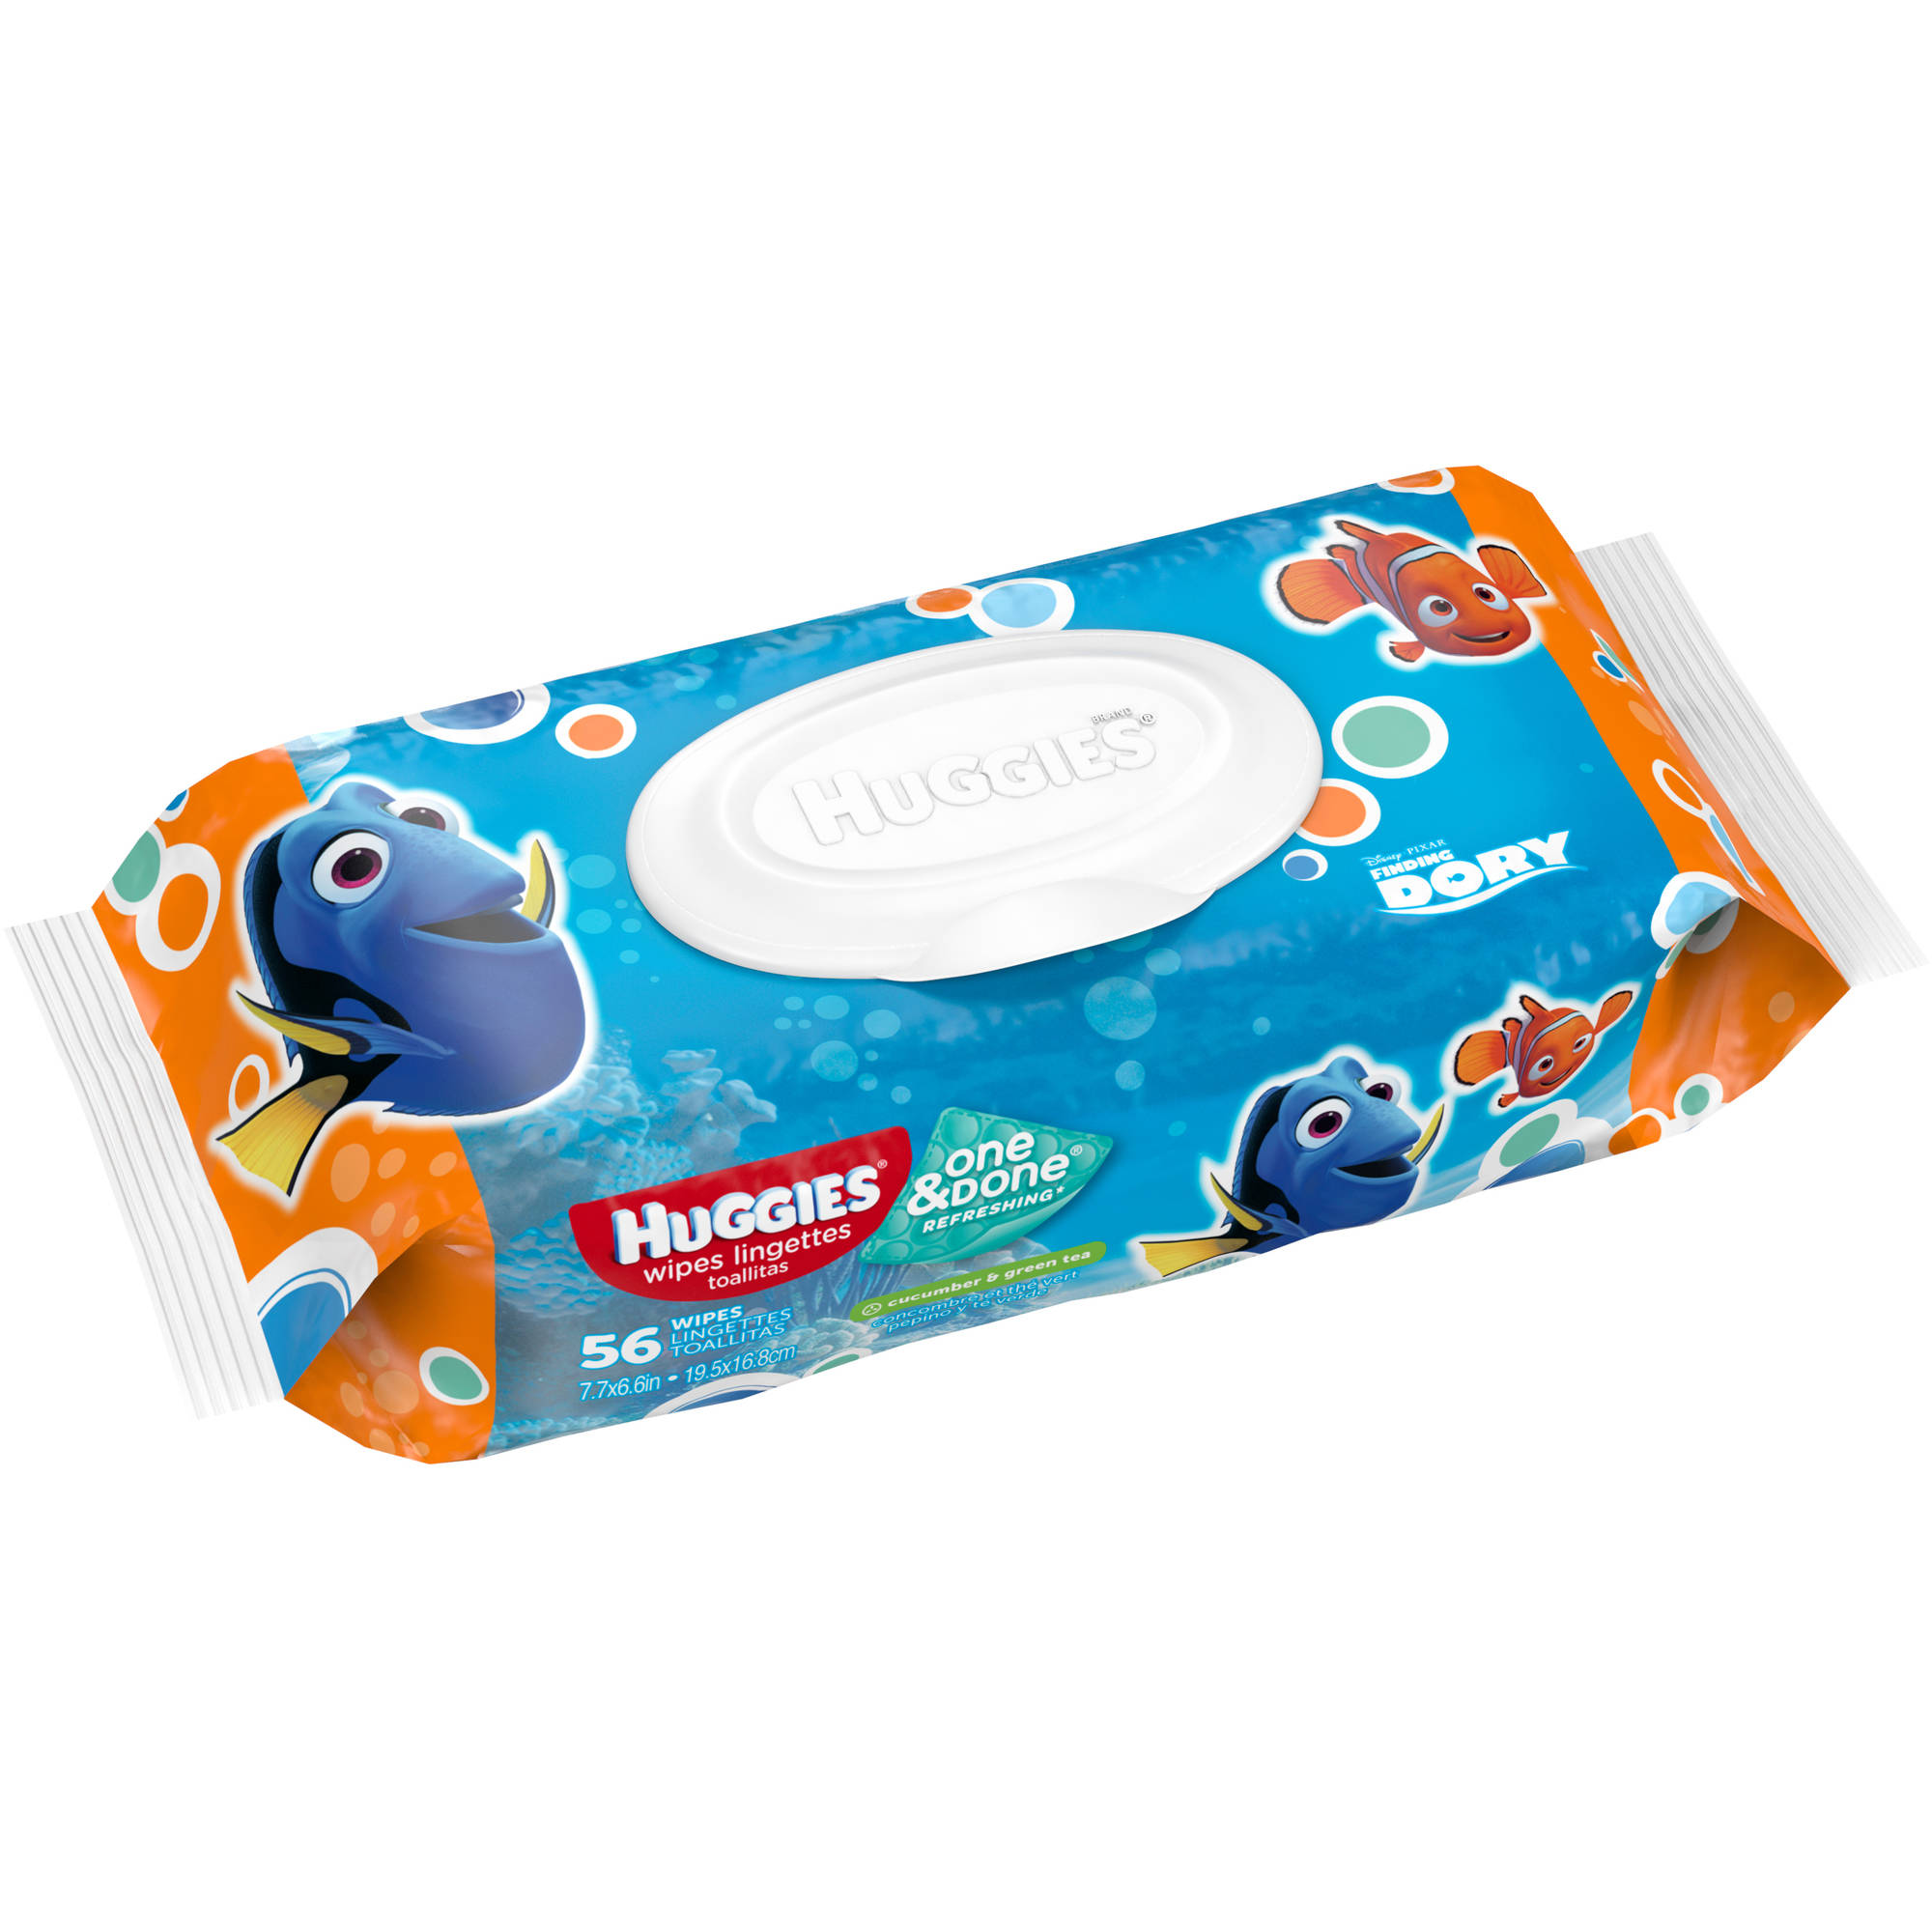 Huggies One & Done Refreshing Baby Wipes, Disney Pixar Finding Dory, Scented, Hypoallergenic, Soft Pack, 56 wipes